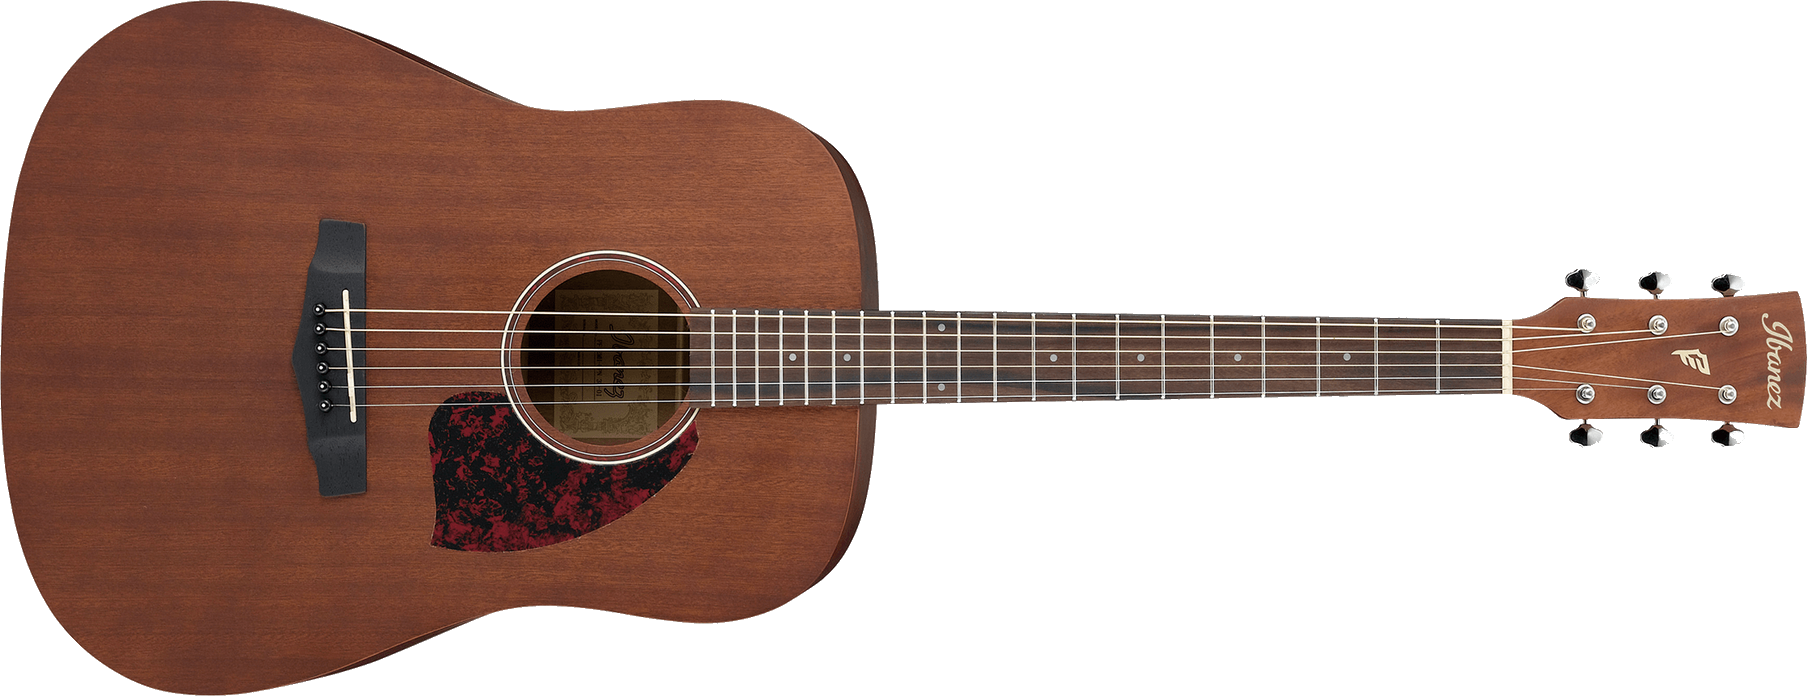 Ibanez PF12MH-OPN Acoustic Guitar